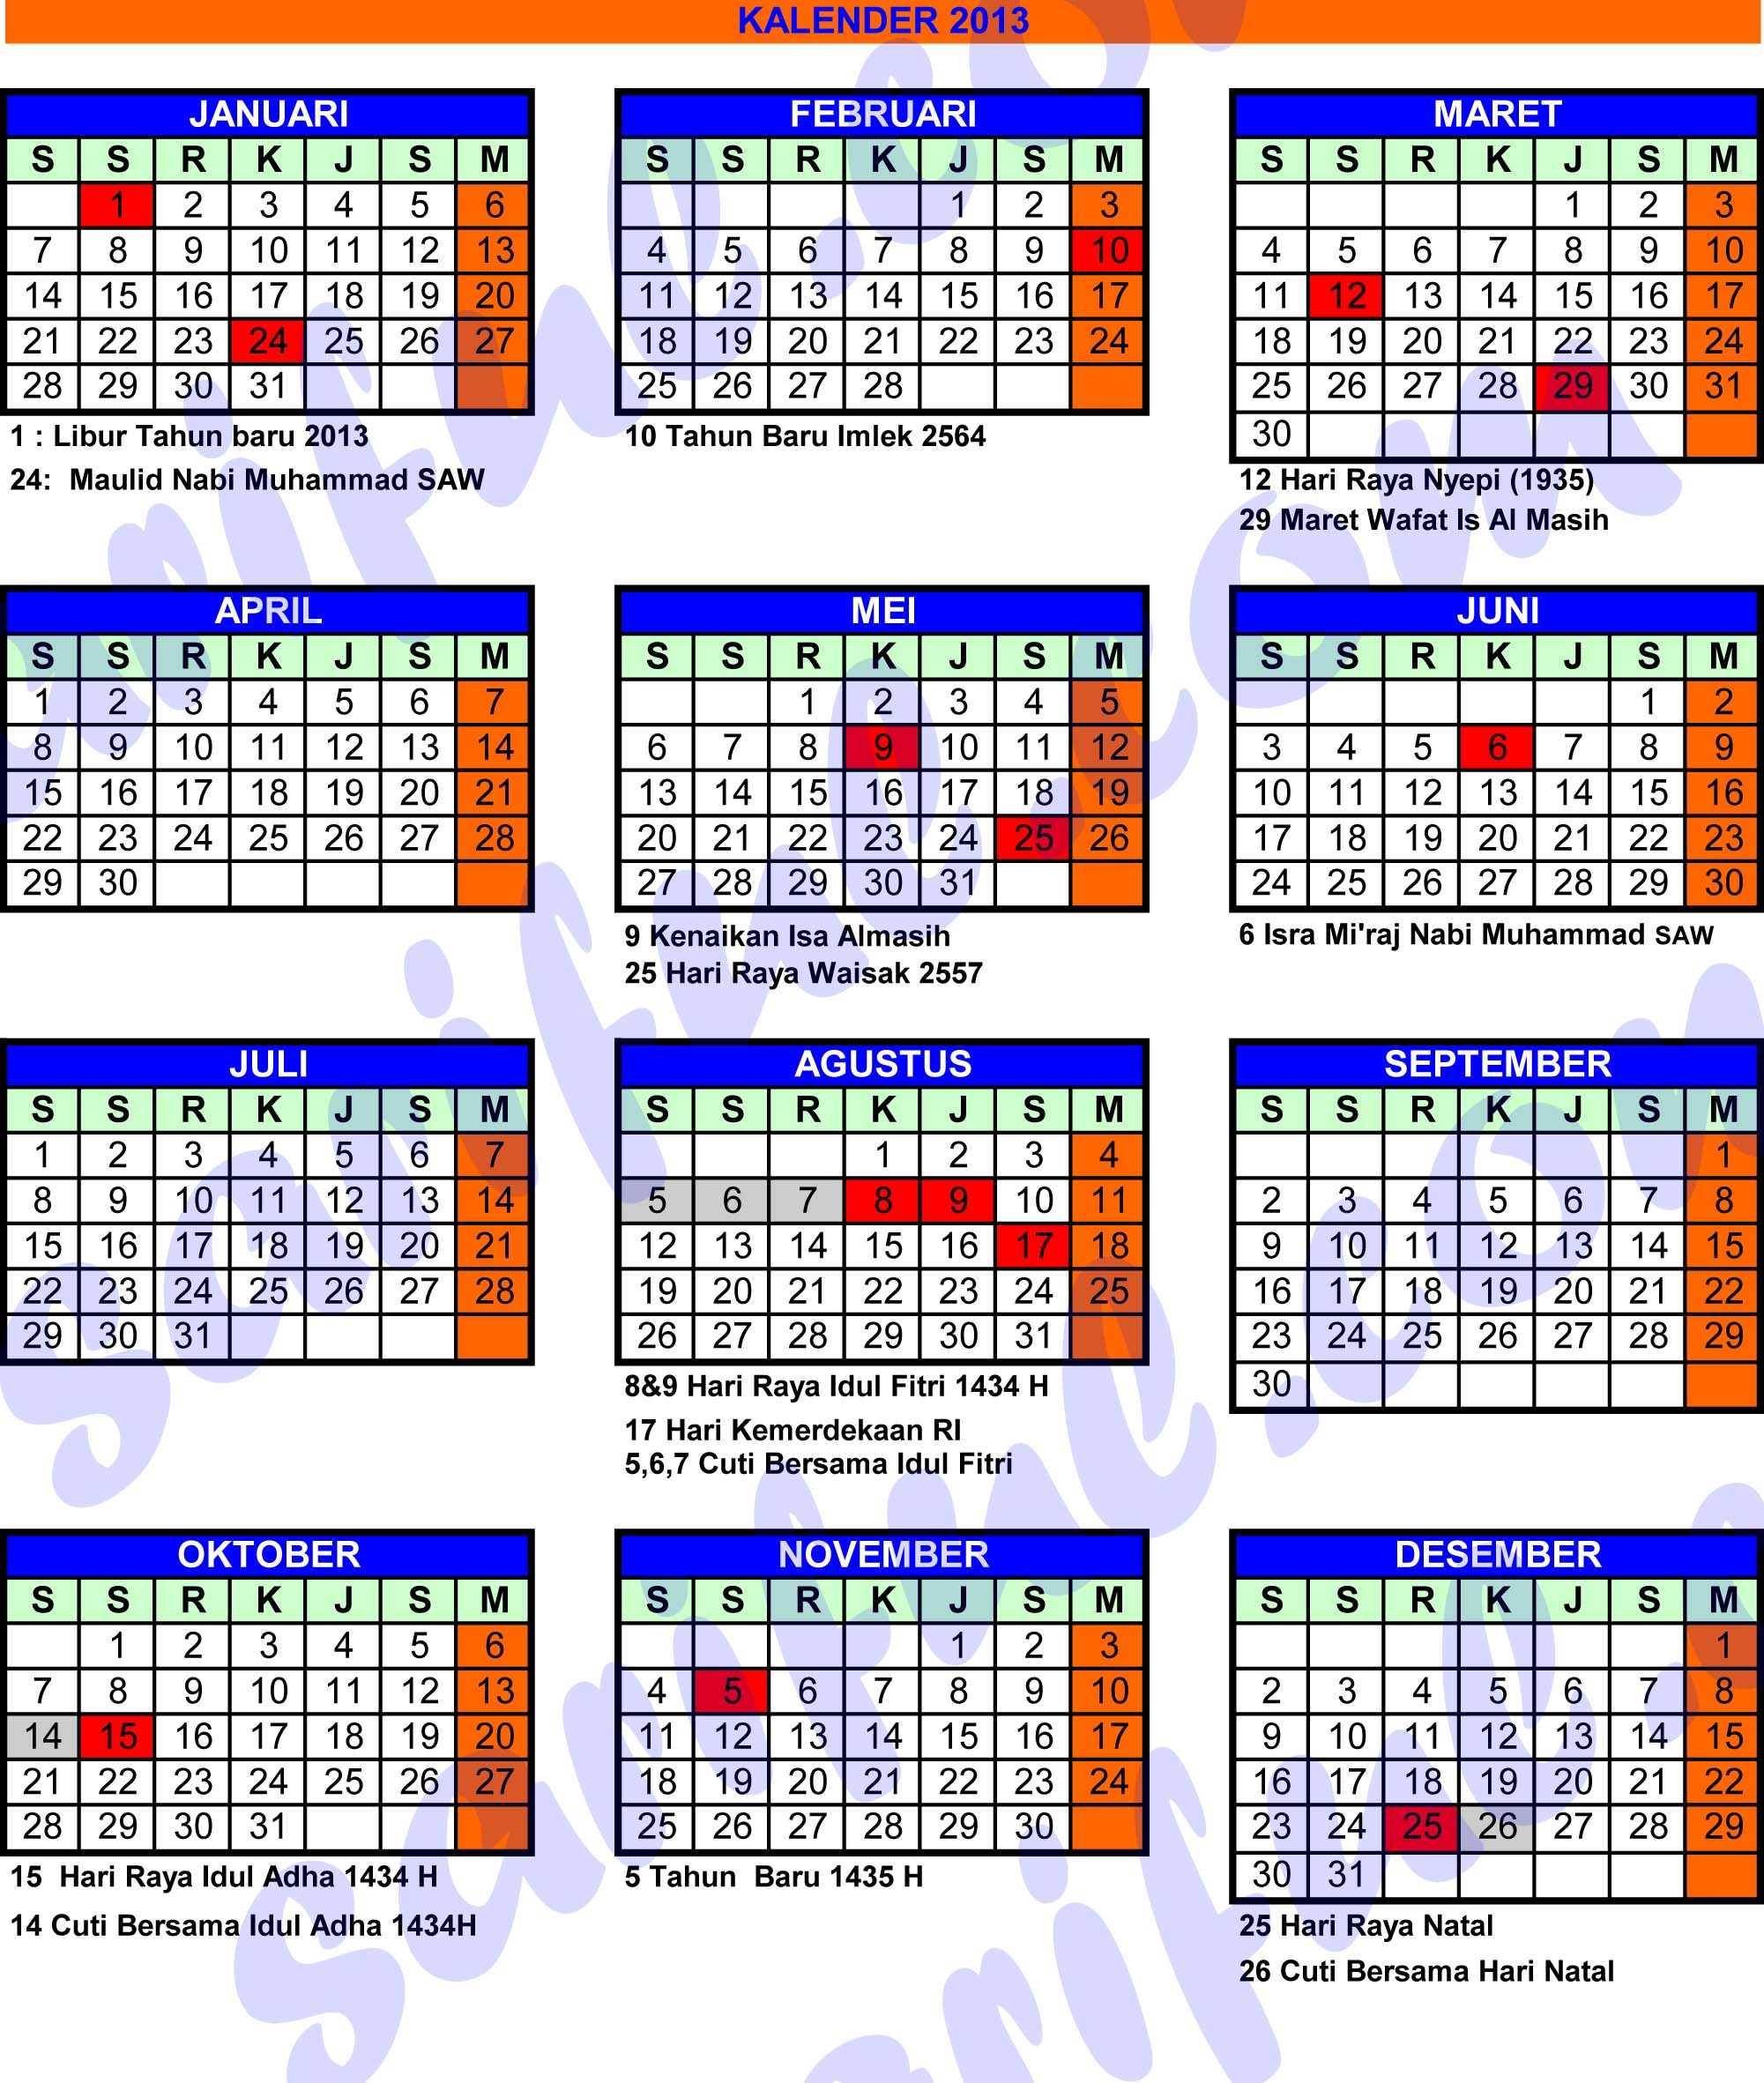 download-kalender2013